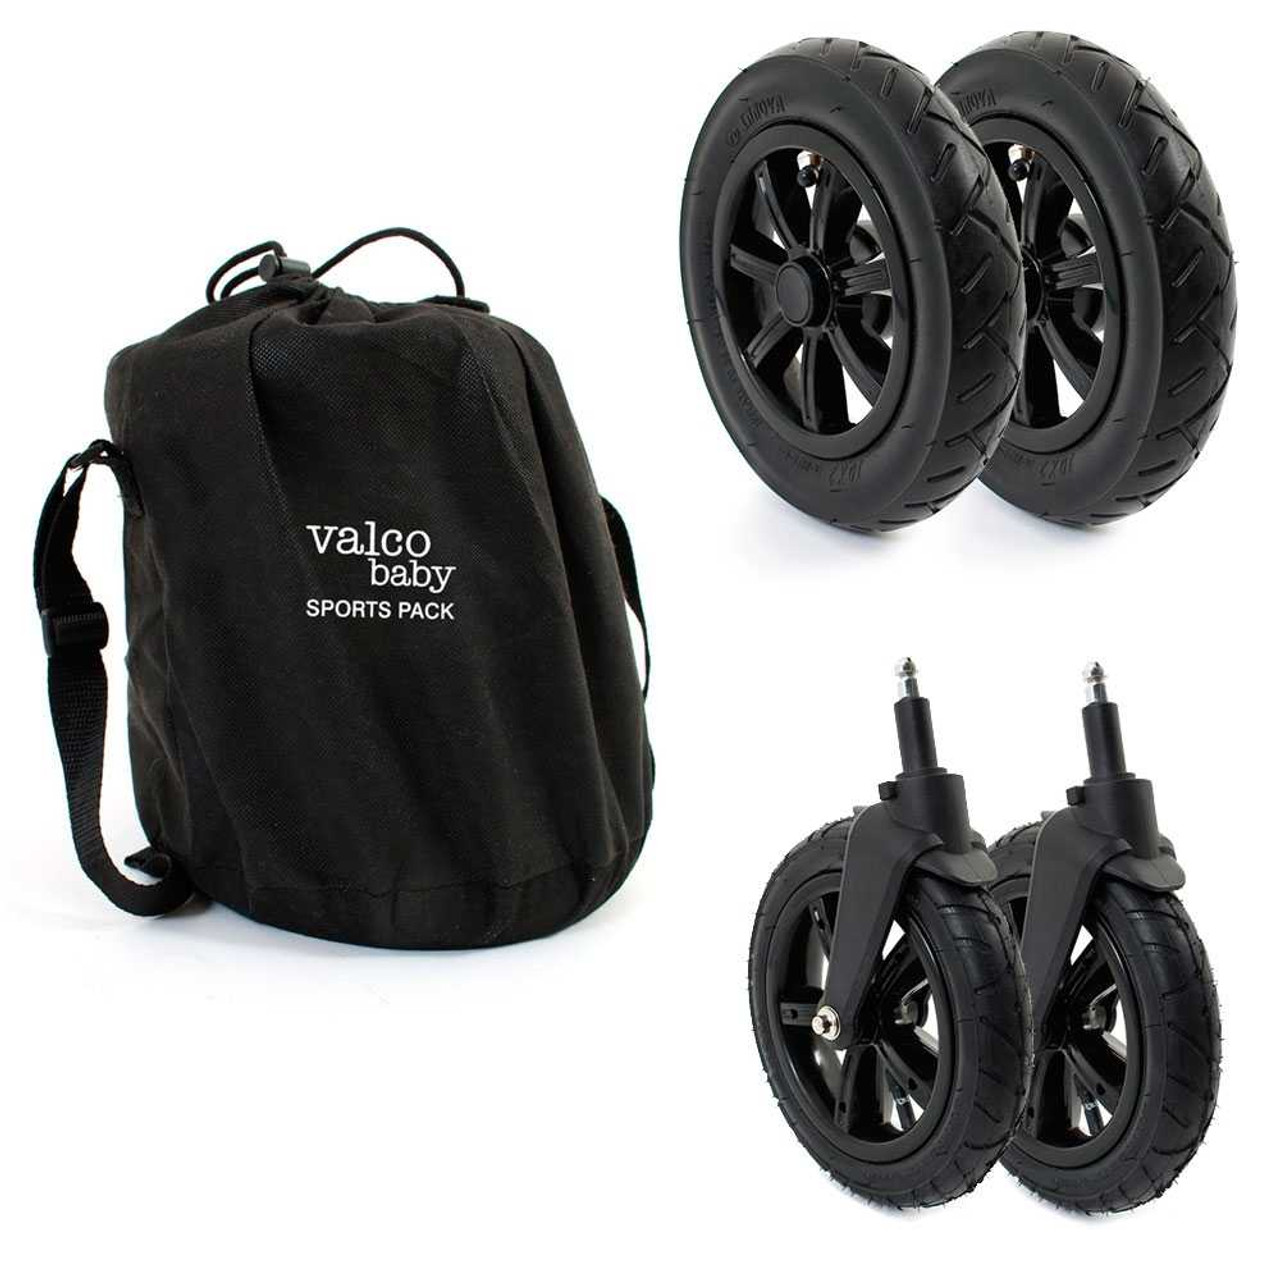 Valco Sports Pack Air Filled Wheels for Snap 4 features pump up air tyres for a smoother ride and better suspension under heavier load, as well as a dedicated storage bag with convenient carry strap for easy transport and storage.